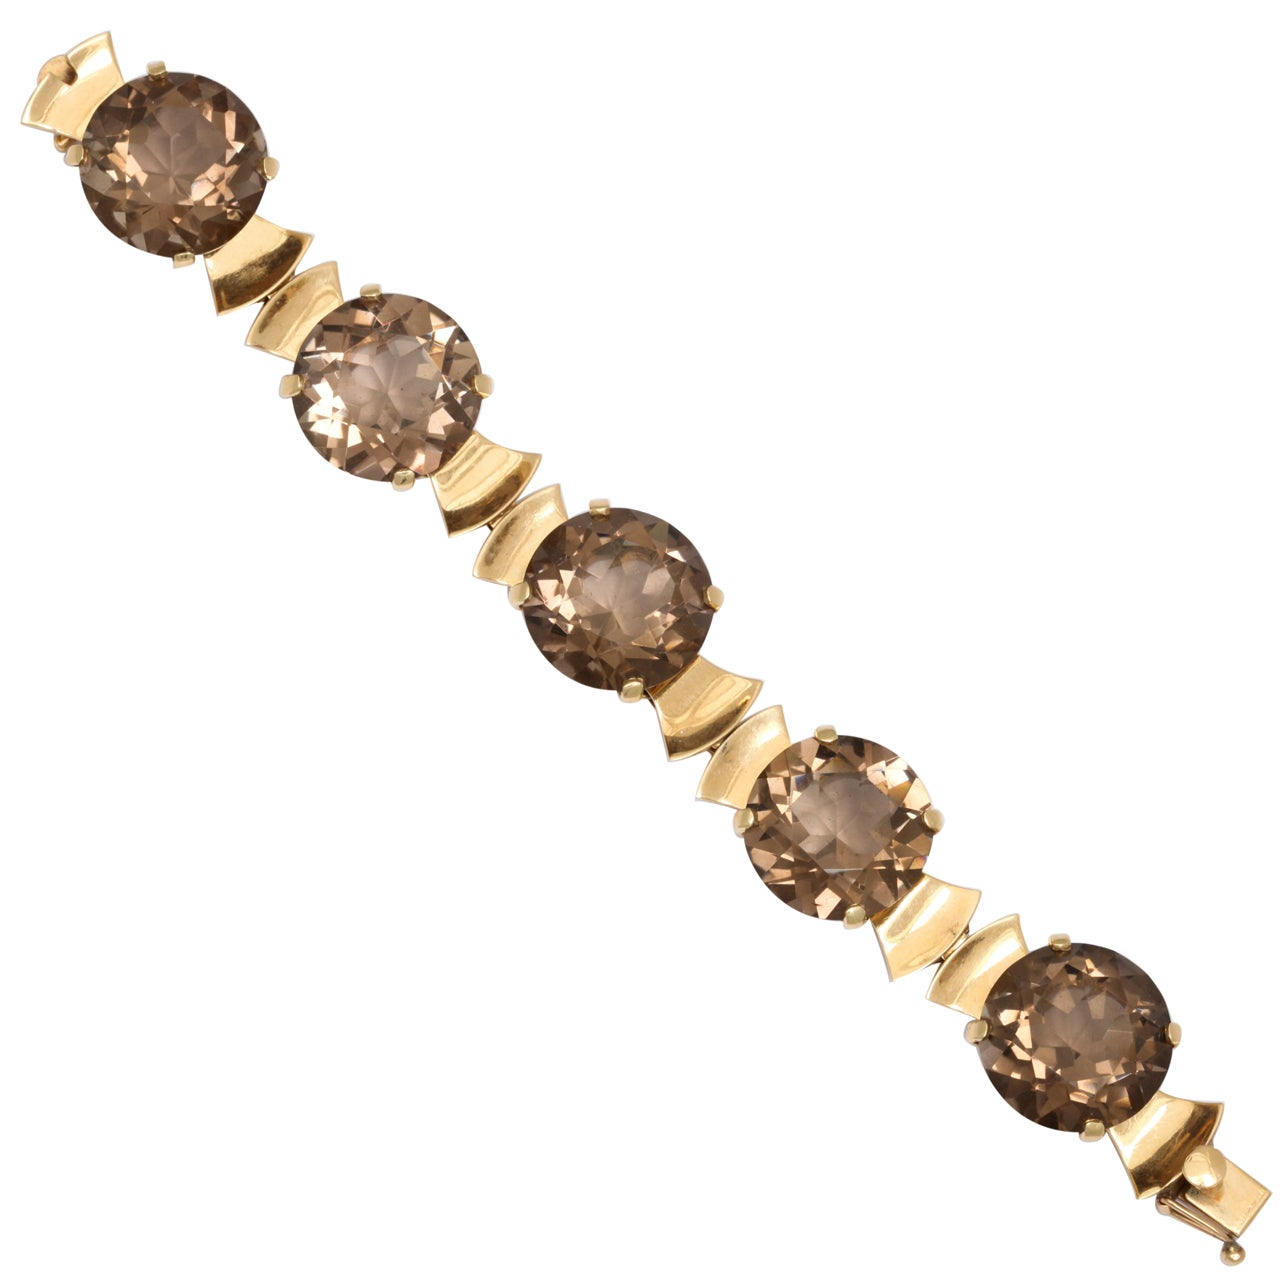 Retro Gold & Topaz Flashlight Bracelet